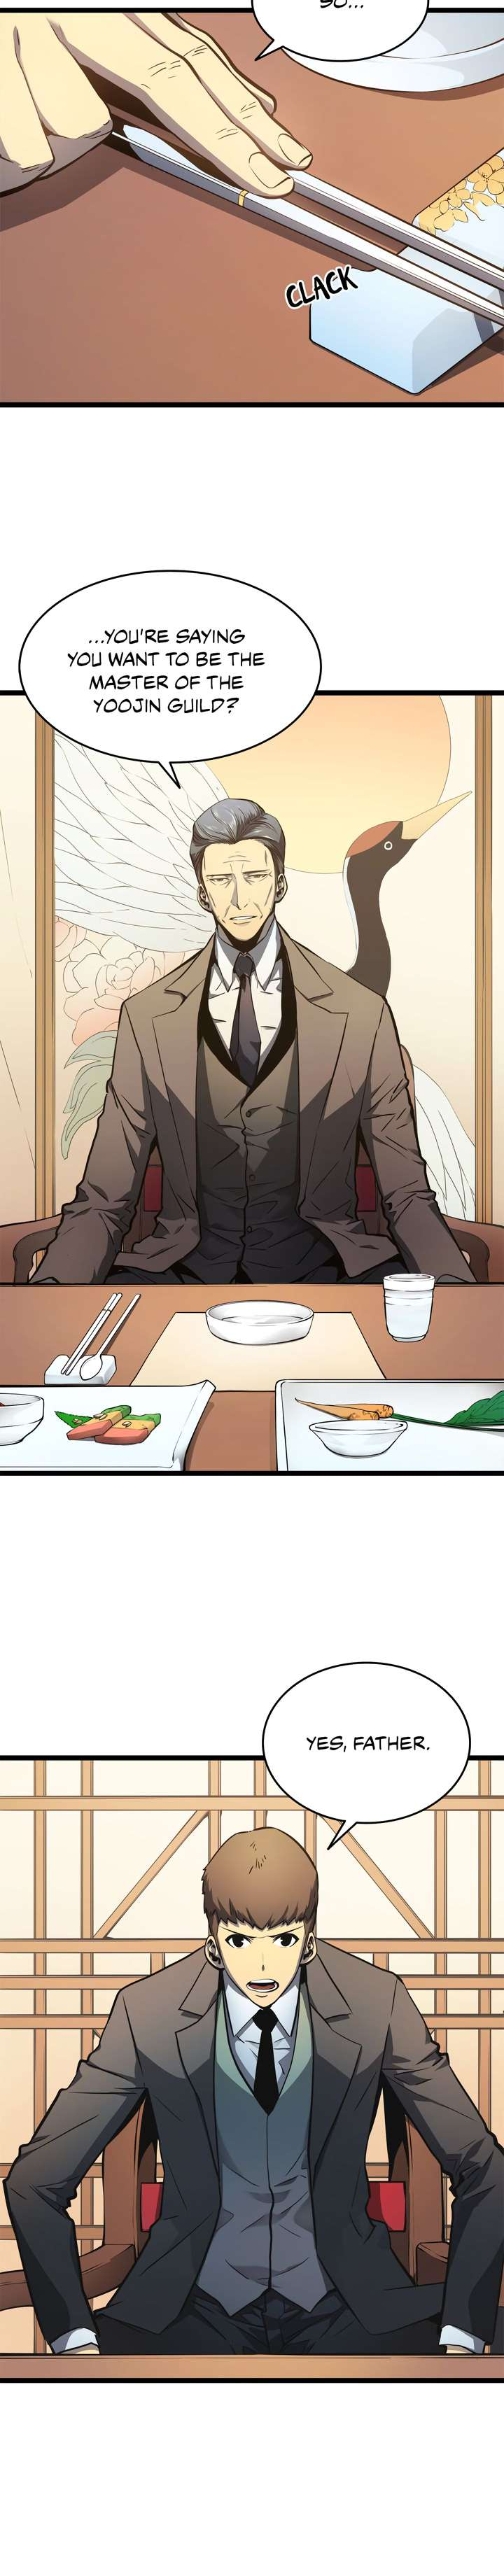 Solo Leveling Chapter 57 Page 14